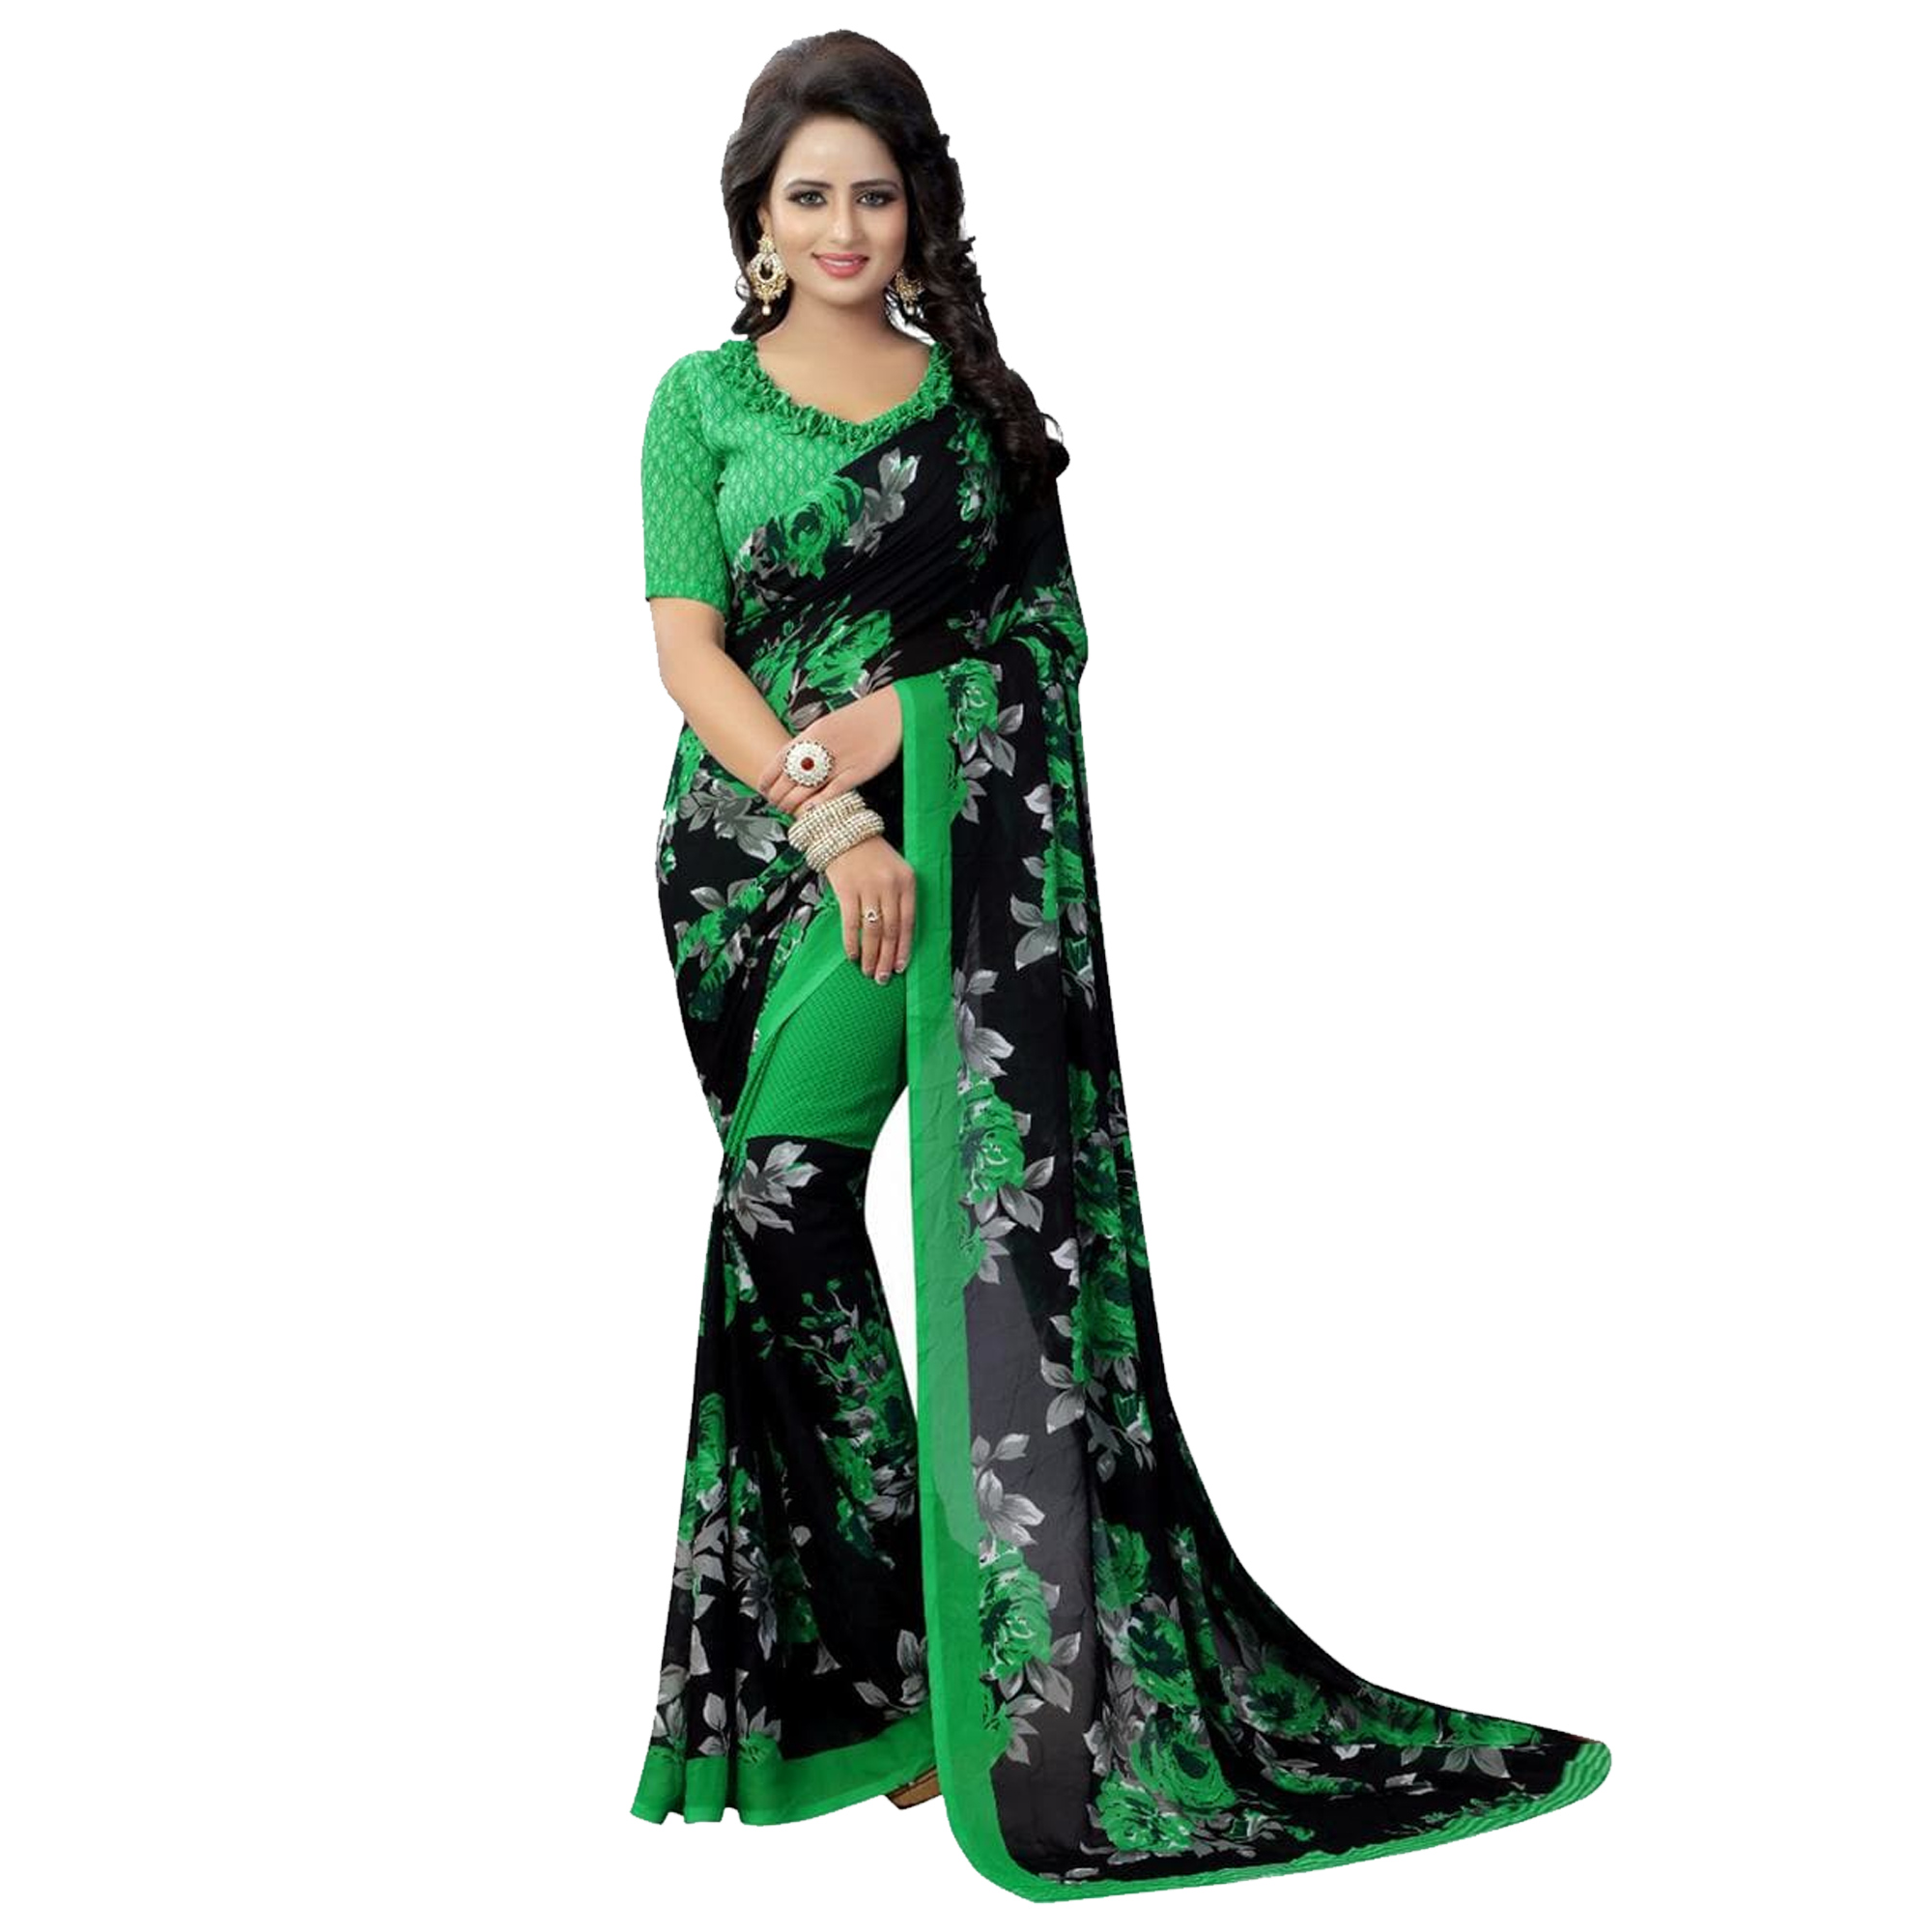 Adorable Casual Printed Georgette Saree - Pack of 2